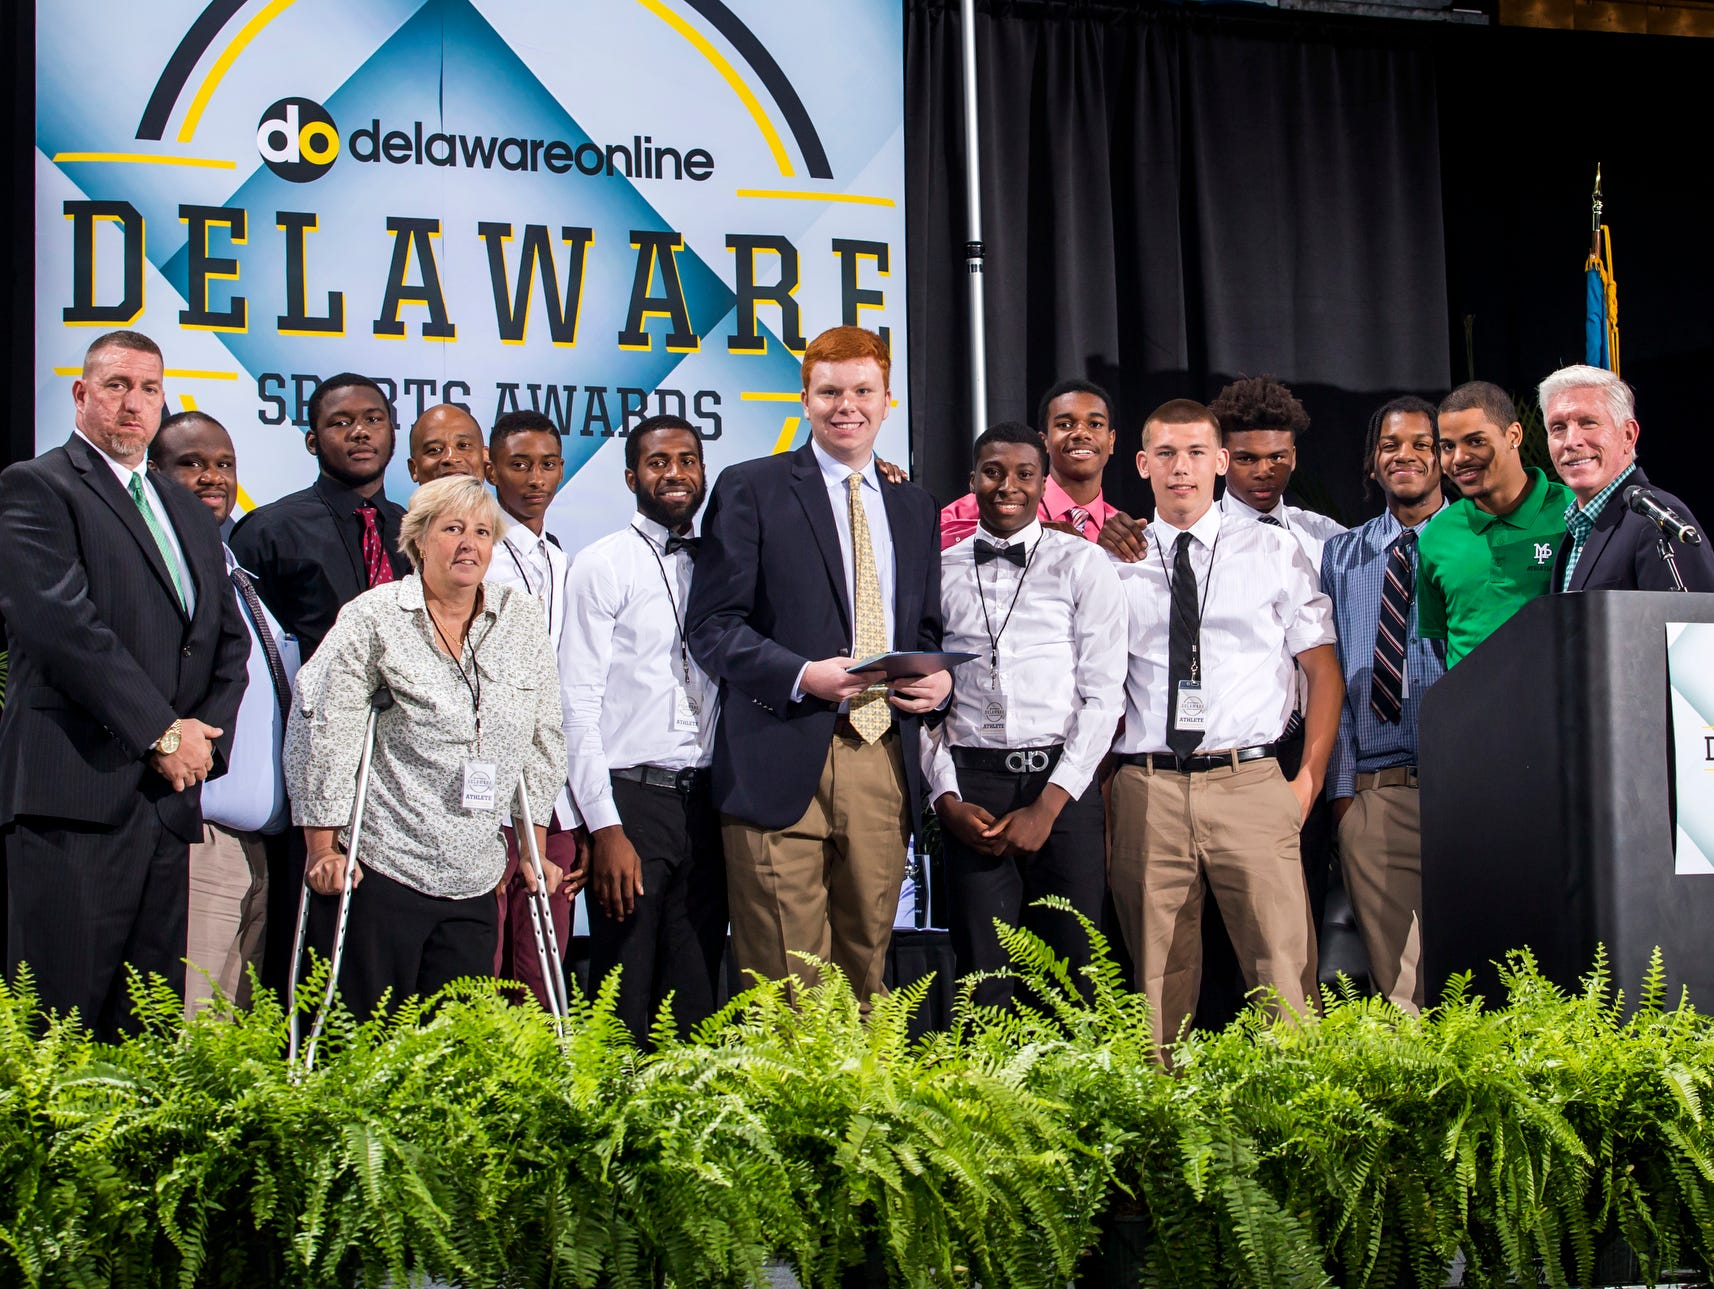 Members of the Mount Pleasant boys basketball team were named the team of the year at the Delaware Sports Awards banquet at the Bob Carpenter Center at the University of Delaware in Newark on Wednesday evening.